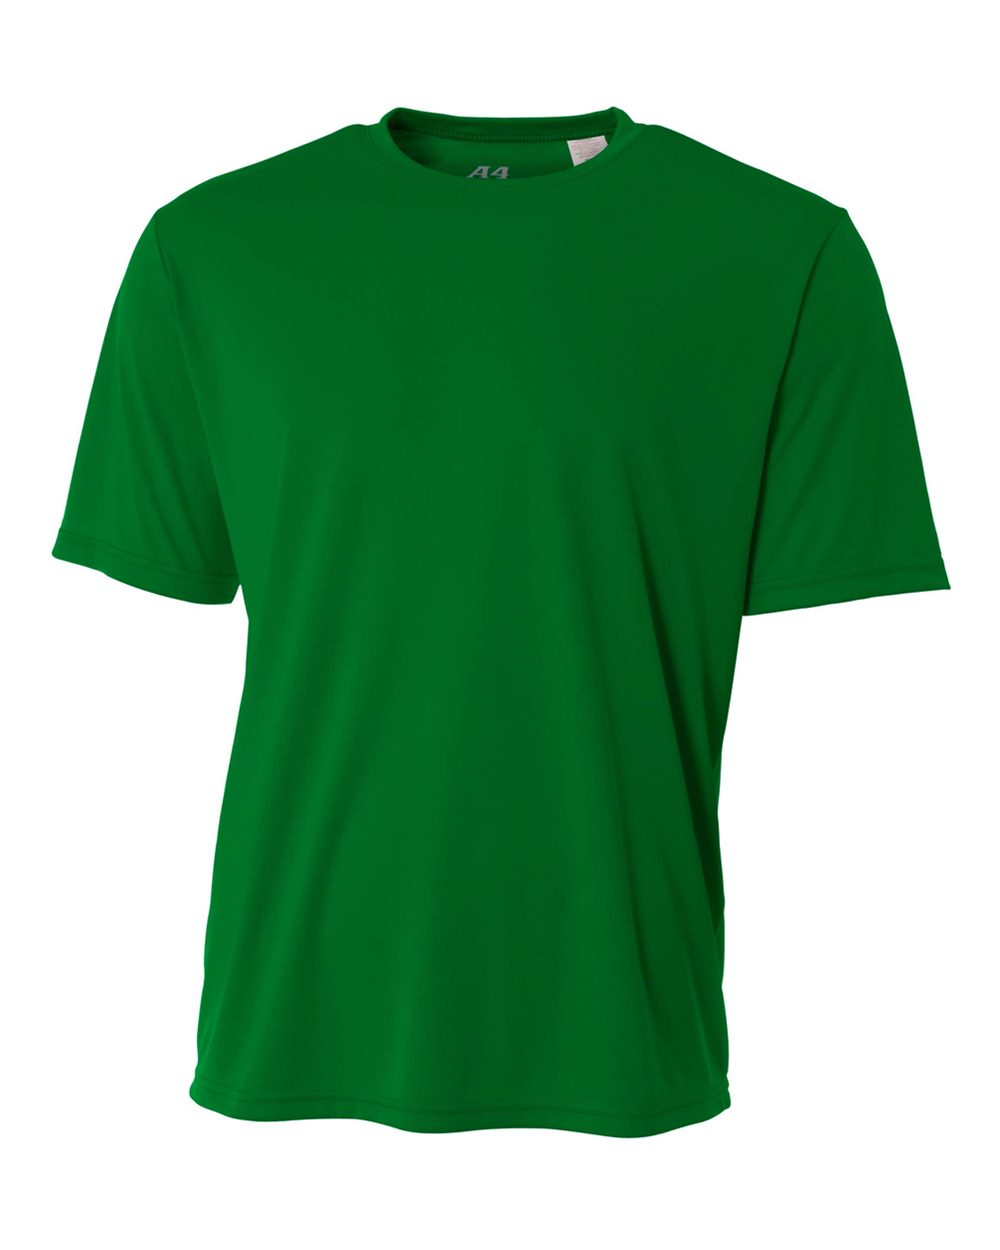 mw-polo-kelly-green.jpg